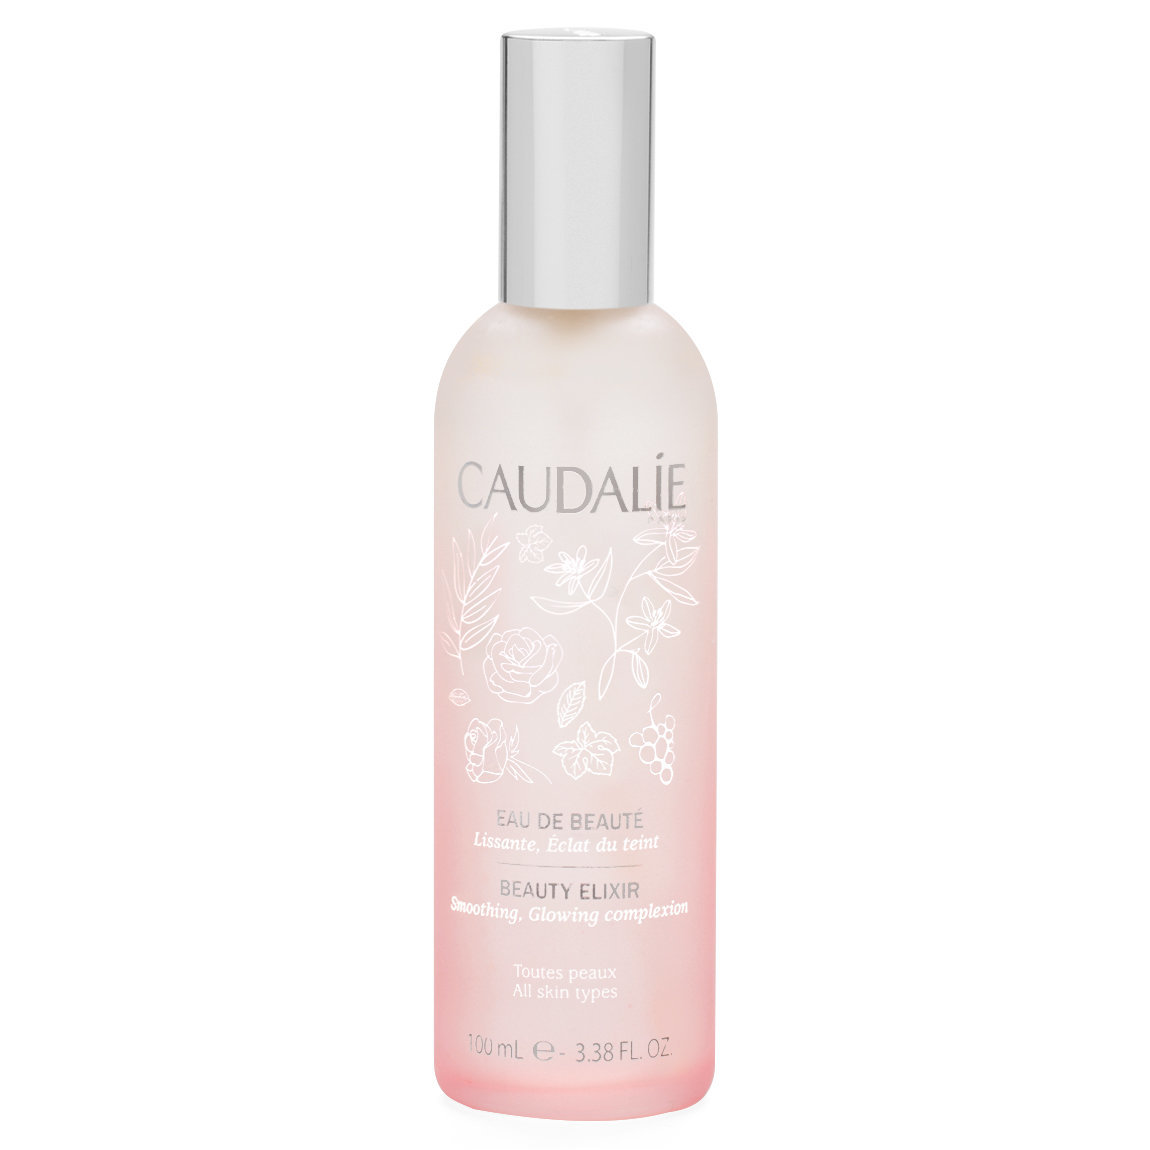 Caudalie Limited Edition Beauty Elixir 100 ml alternative view 1 - product swatch.